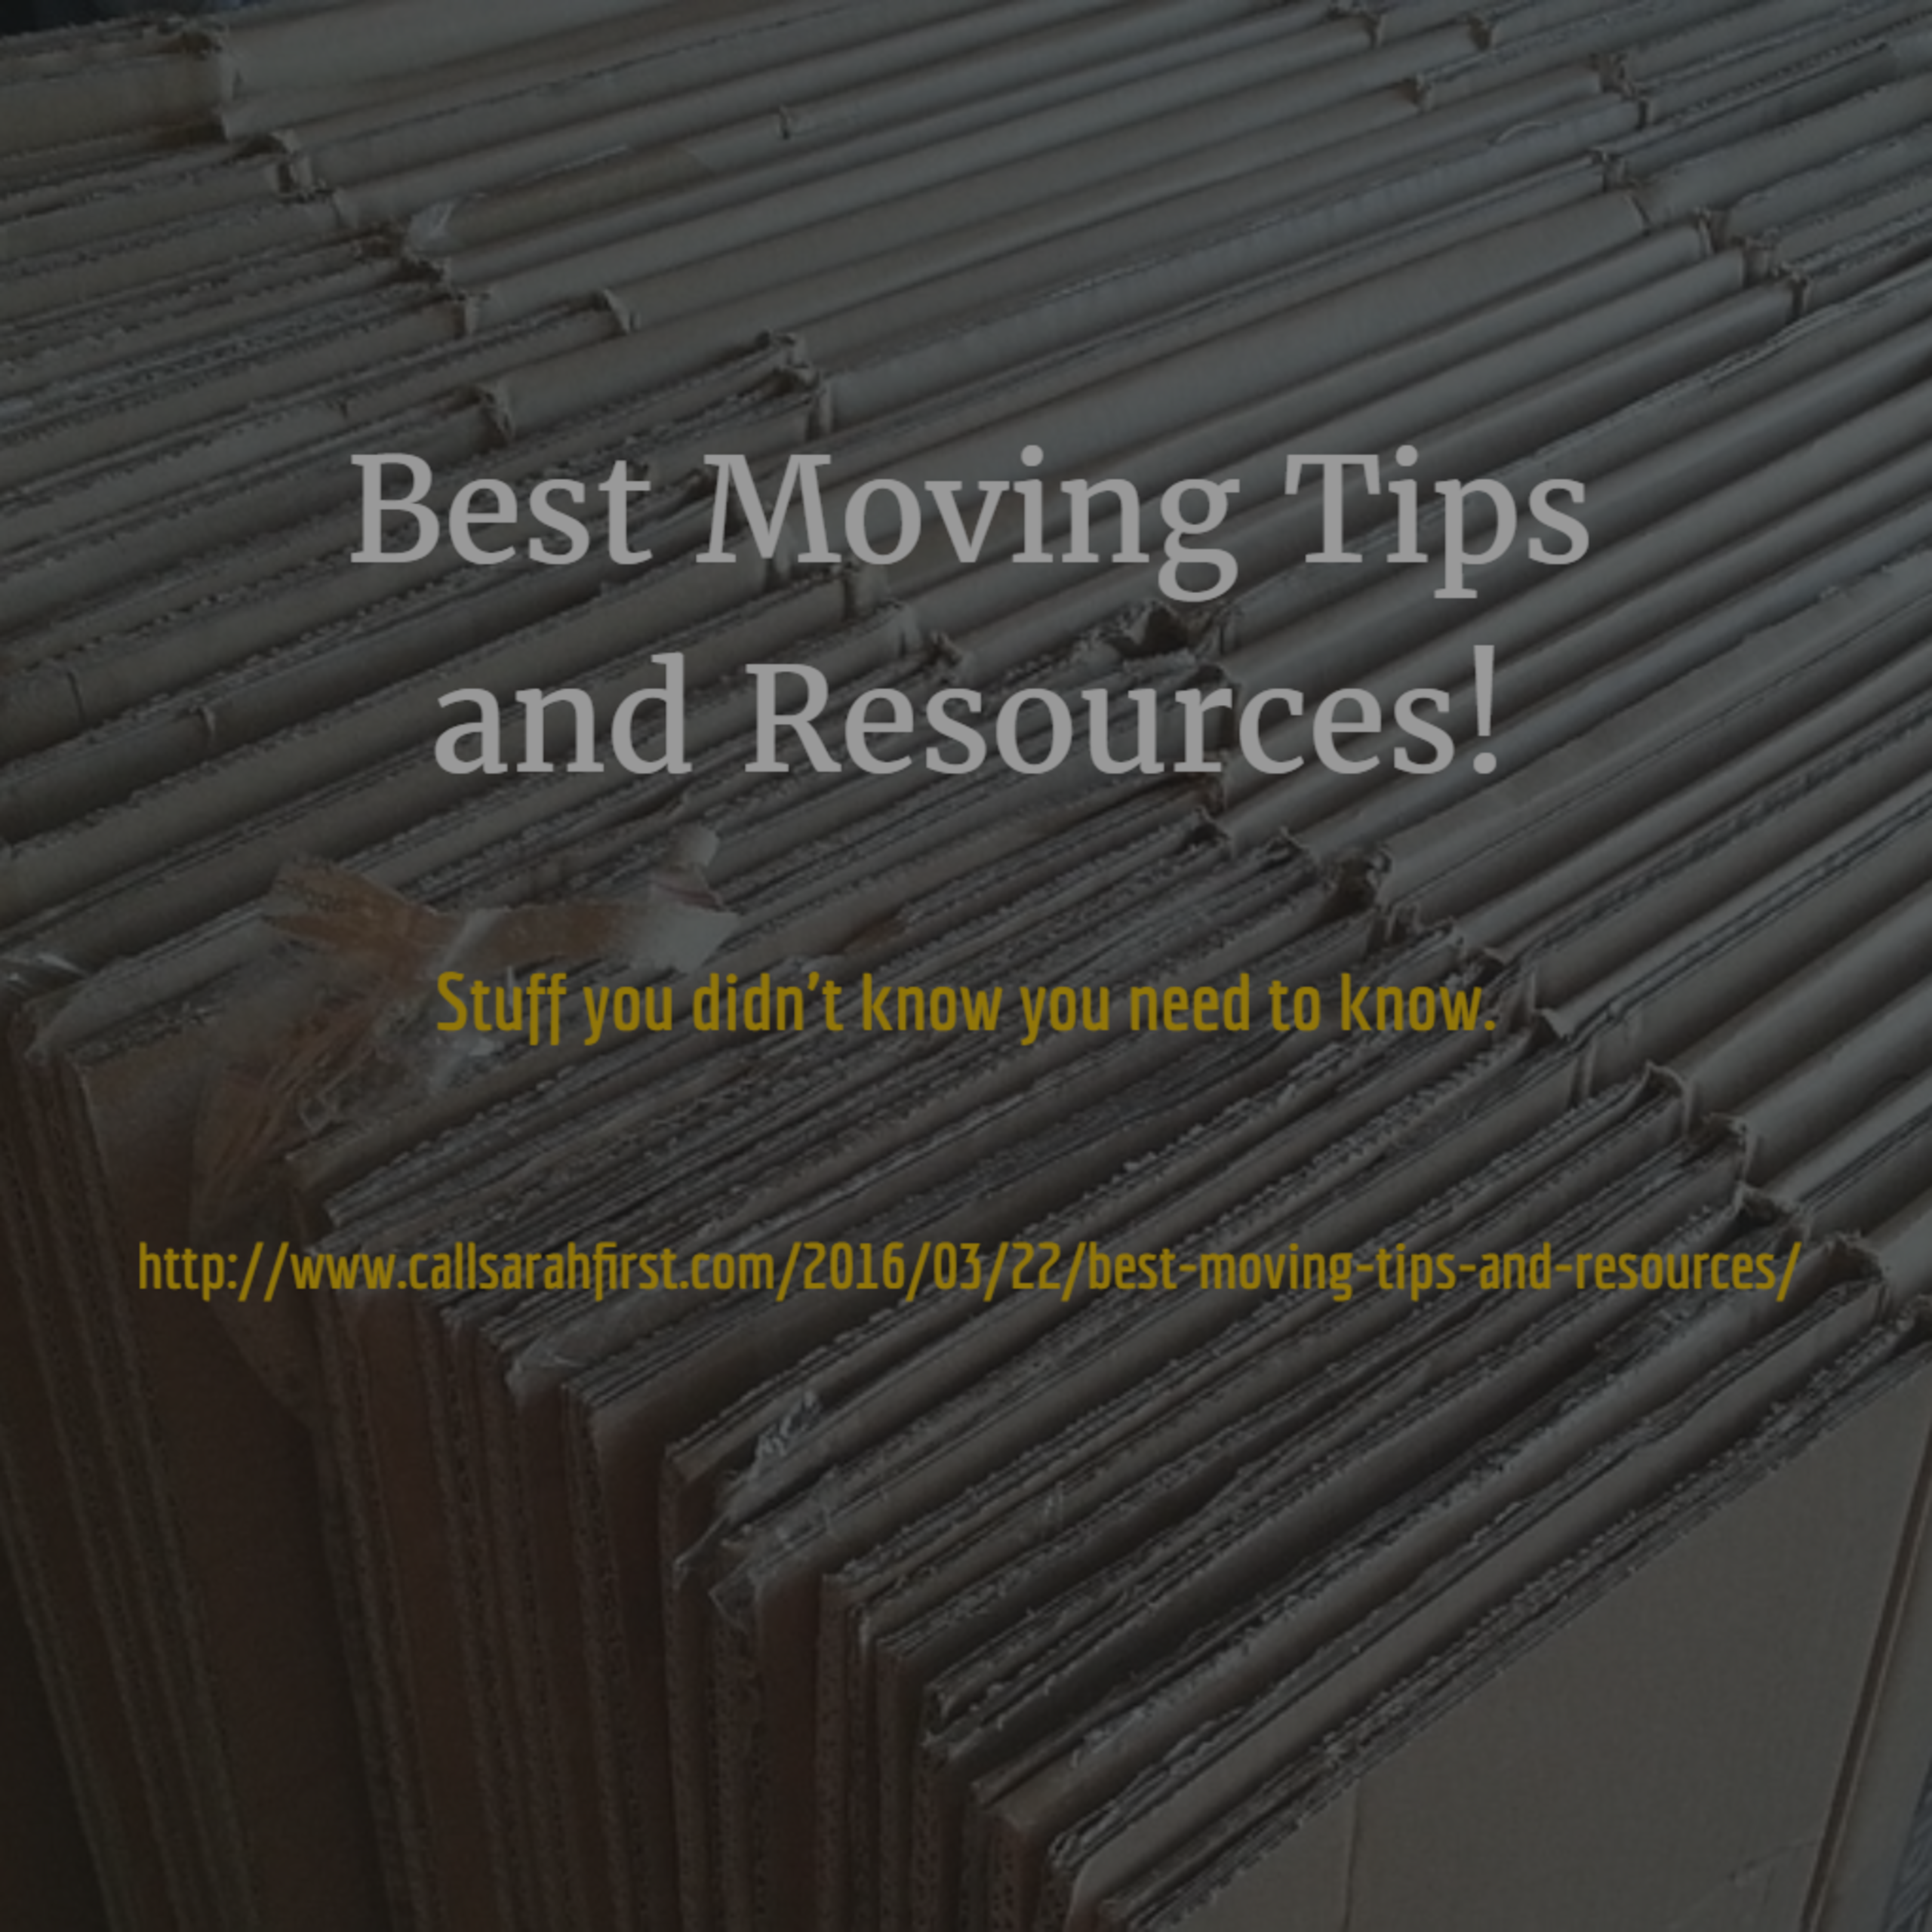 Best Moving Tips and Resources!